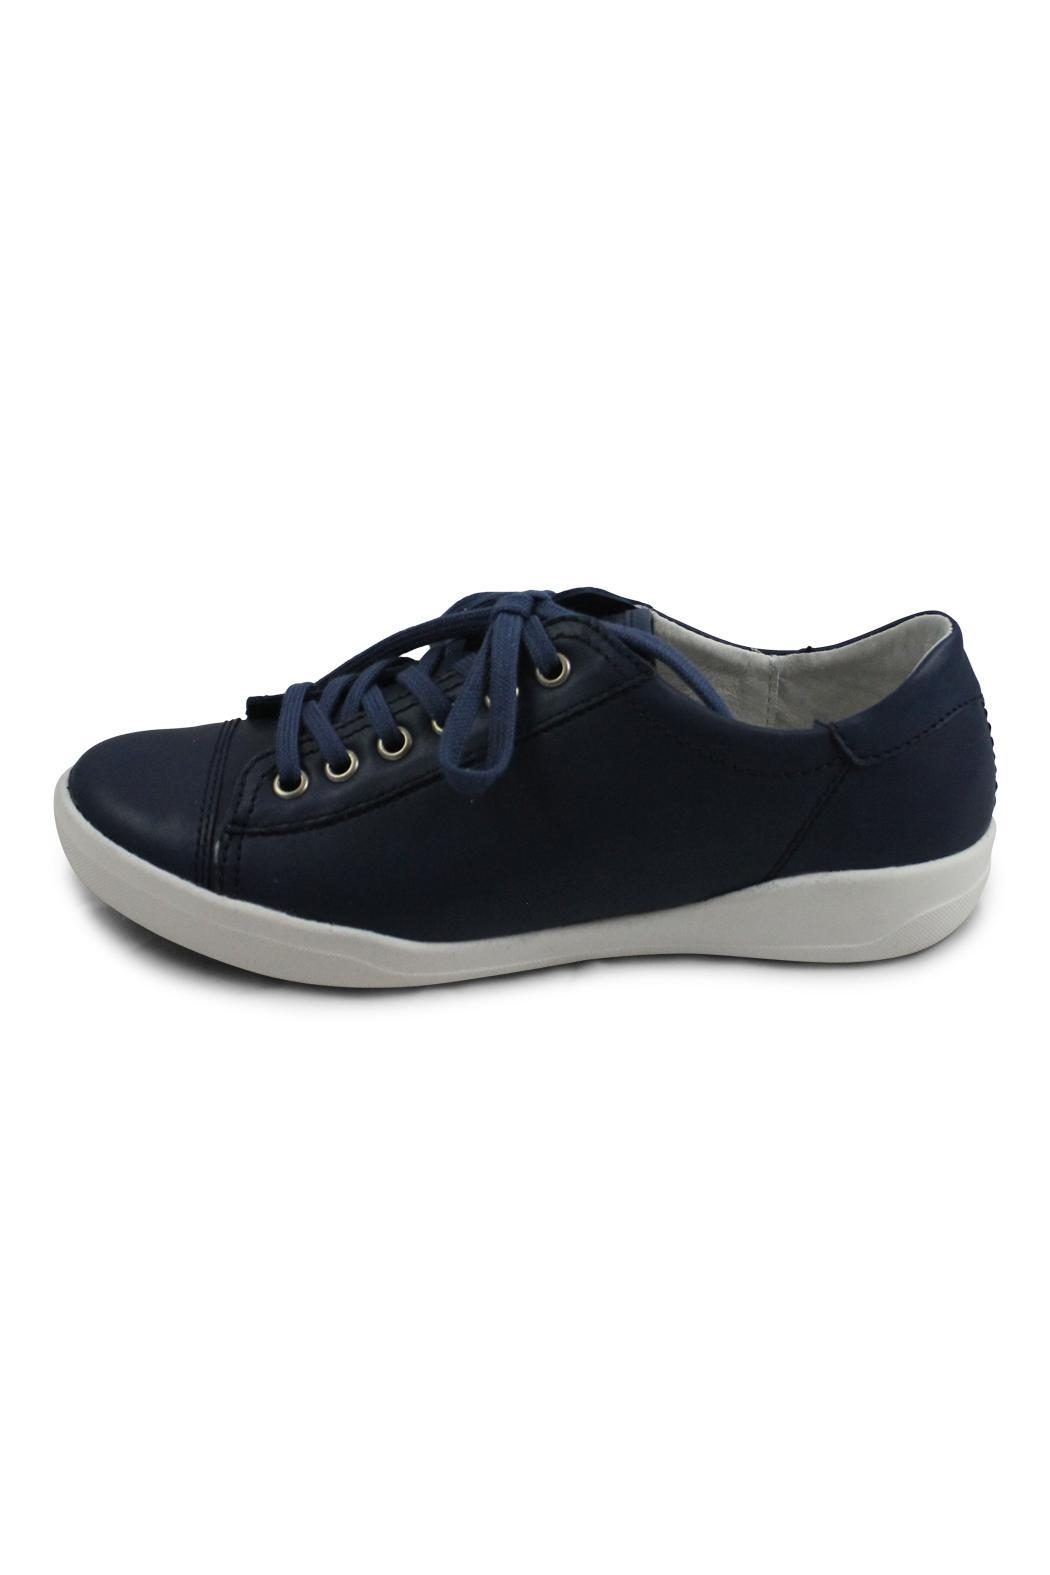 Josef Seibel Blue Lace Up - Main Image